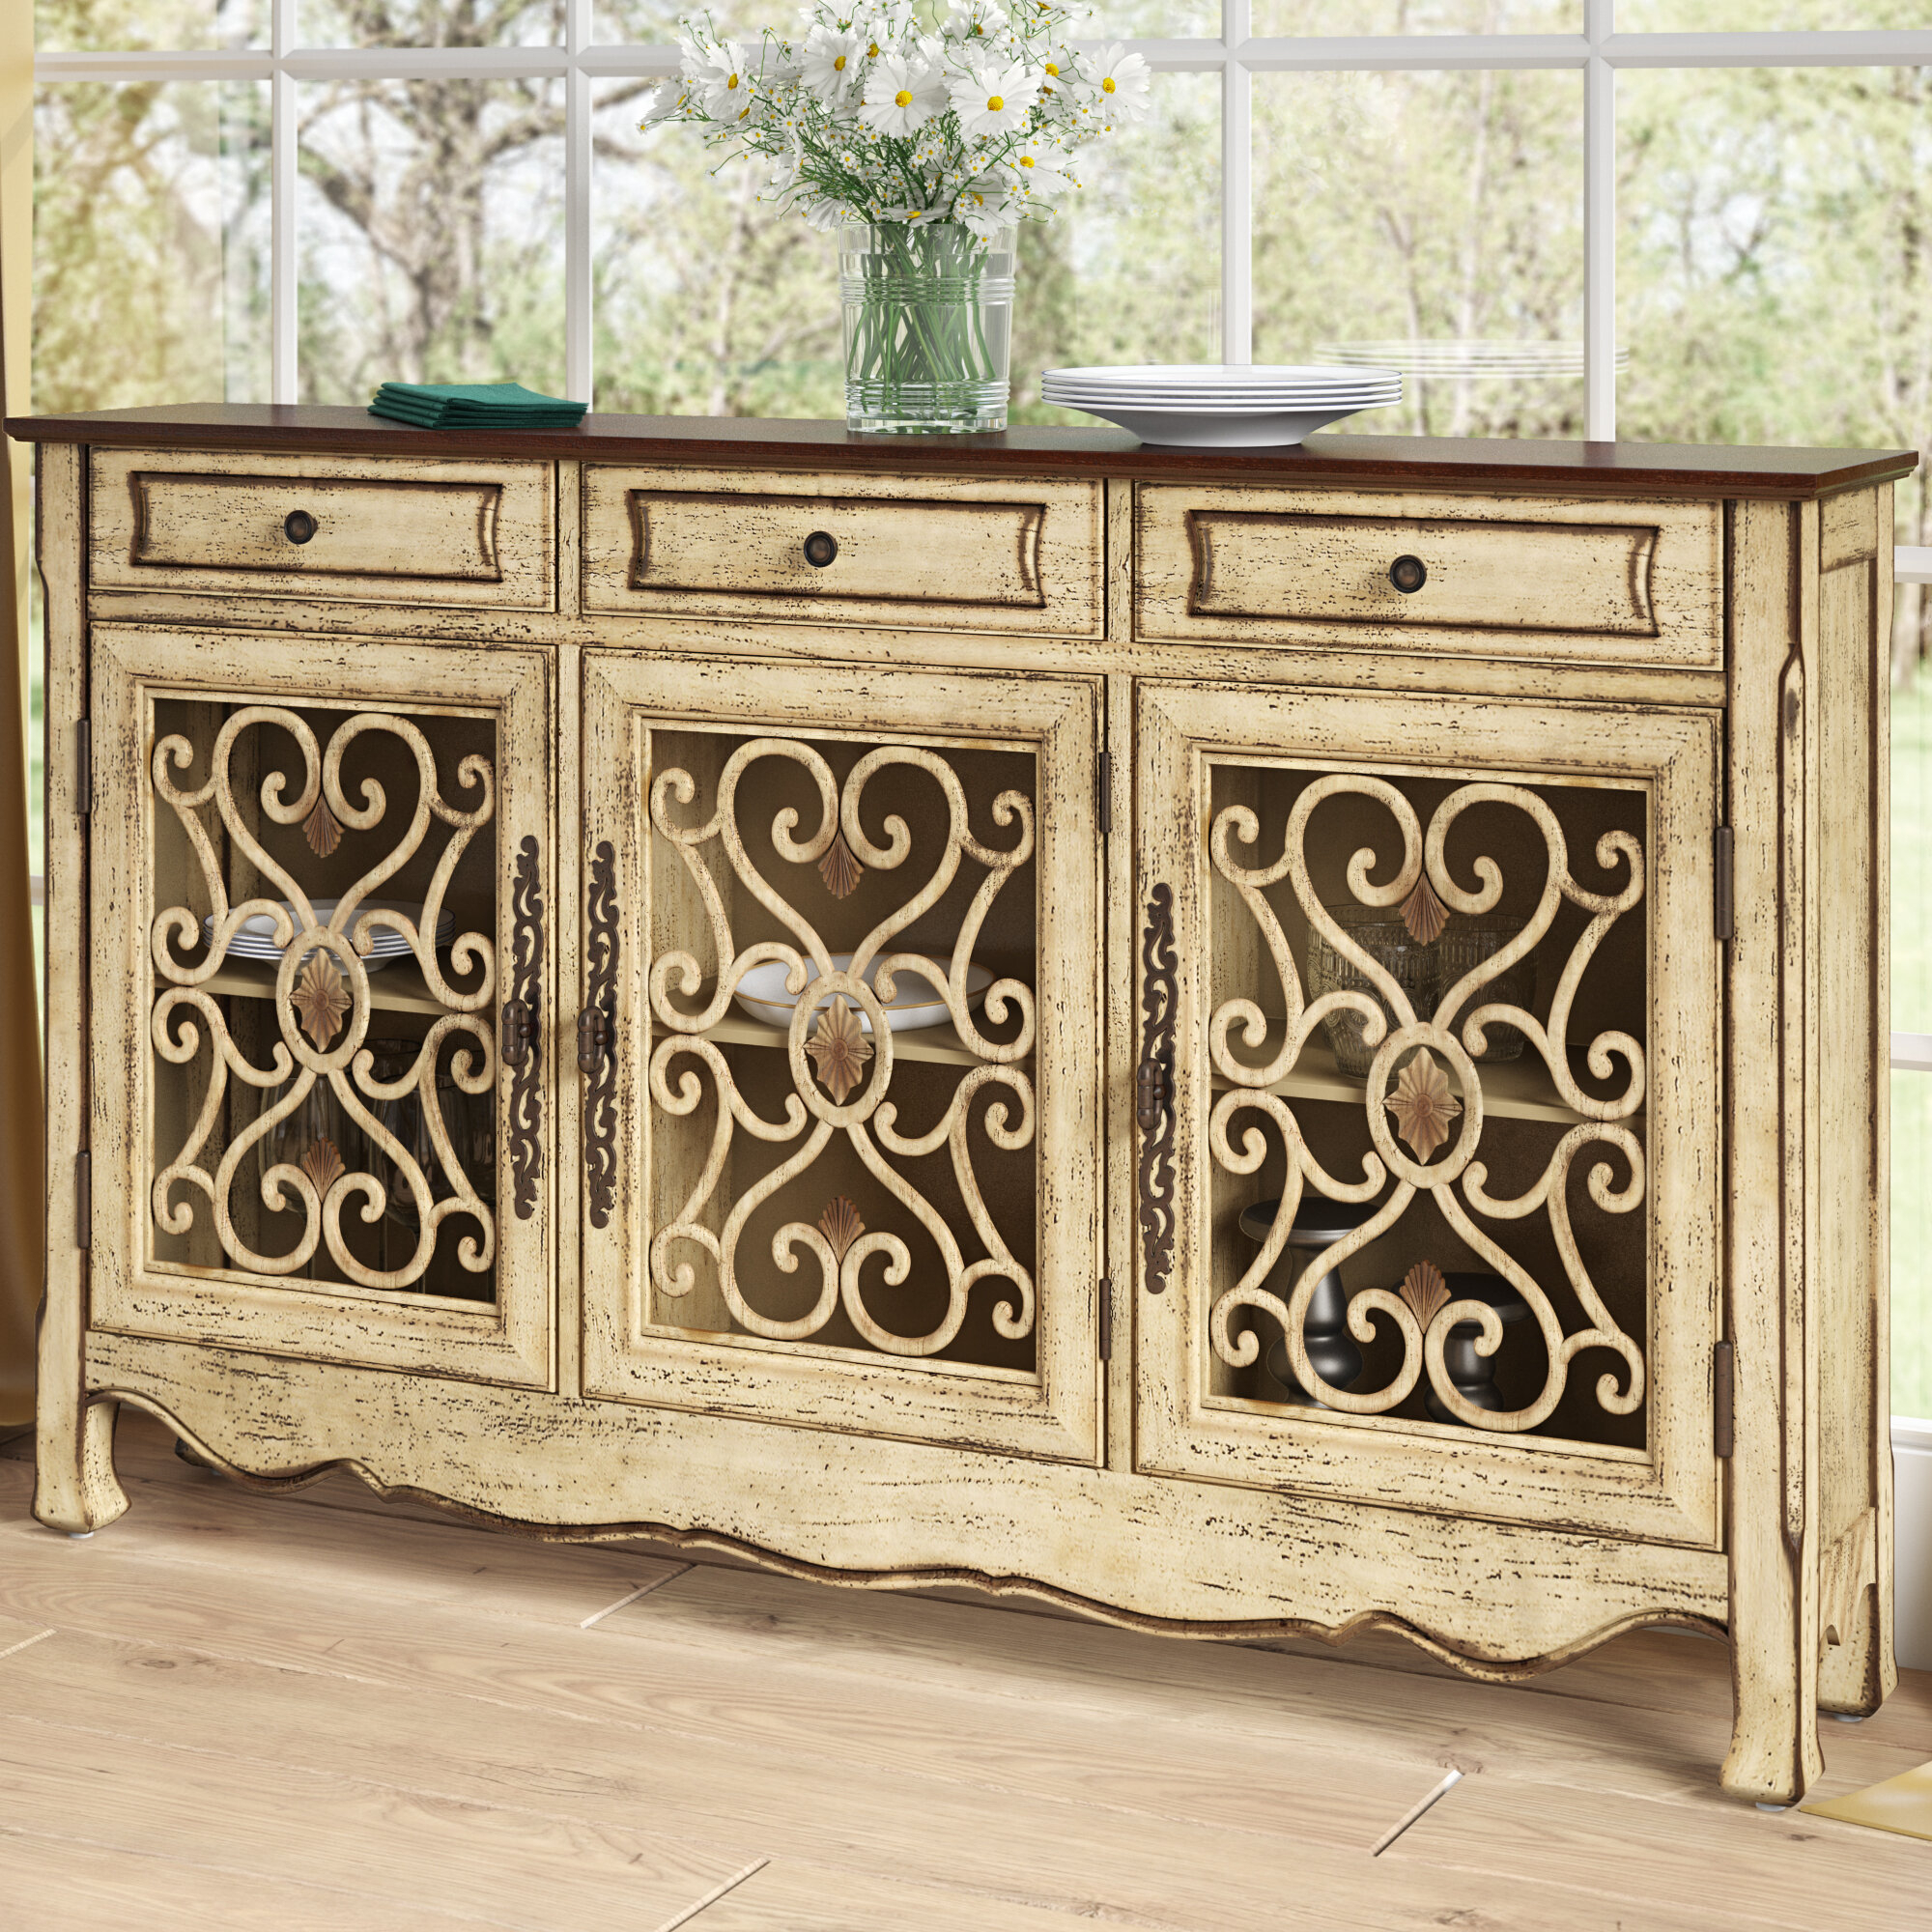 Drawer Equipped Sideboards & Buffets You'll Love In 2019 Throughout Joyner Sideboards (Image 10 of 30)